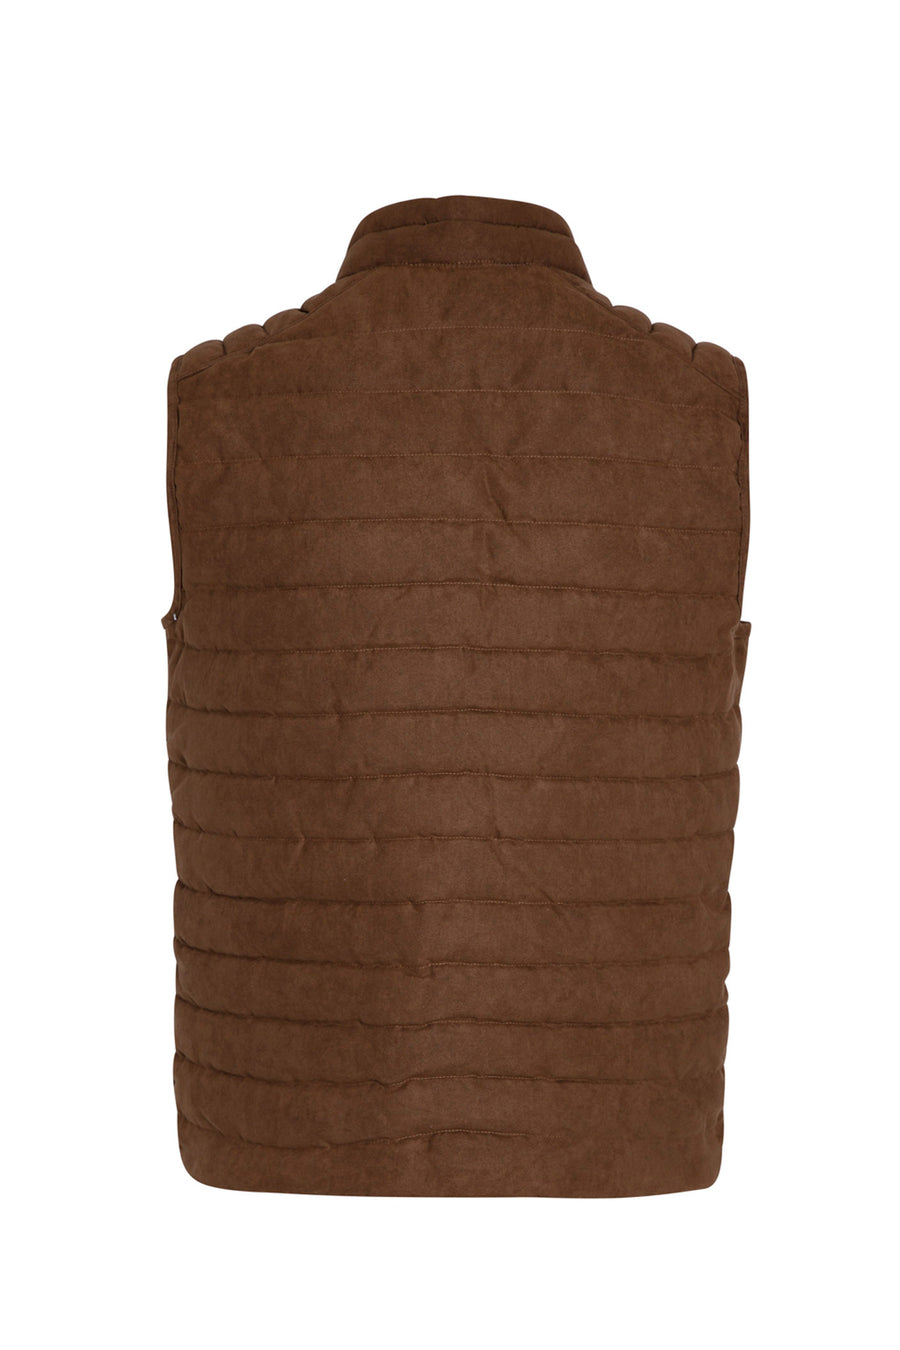 Mocha Brown Quilted Suede Touch Vest